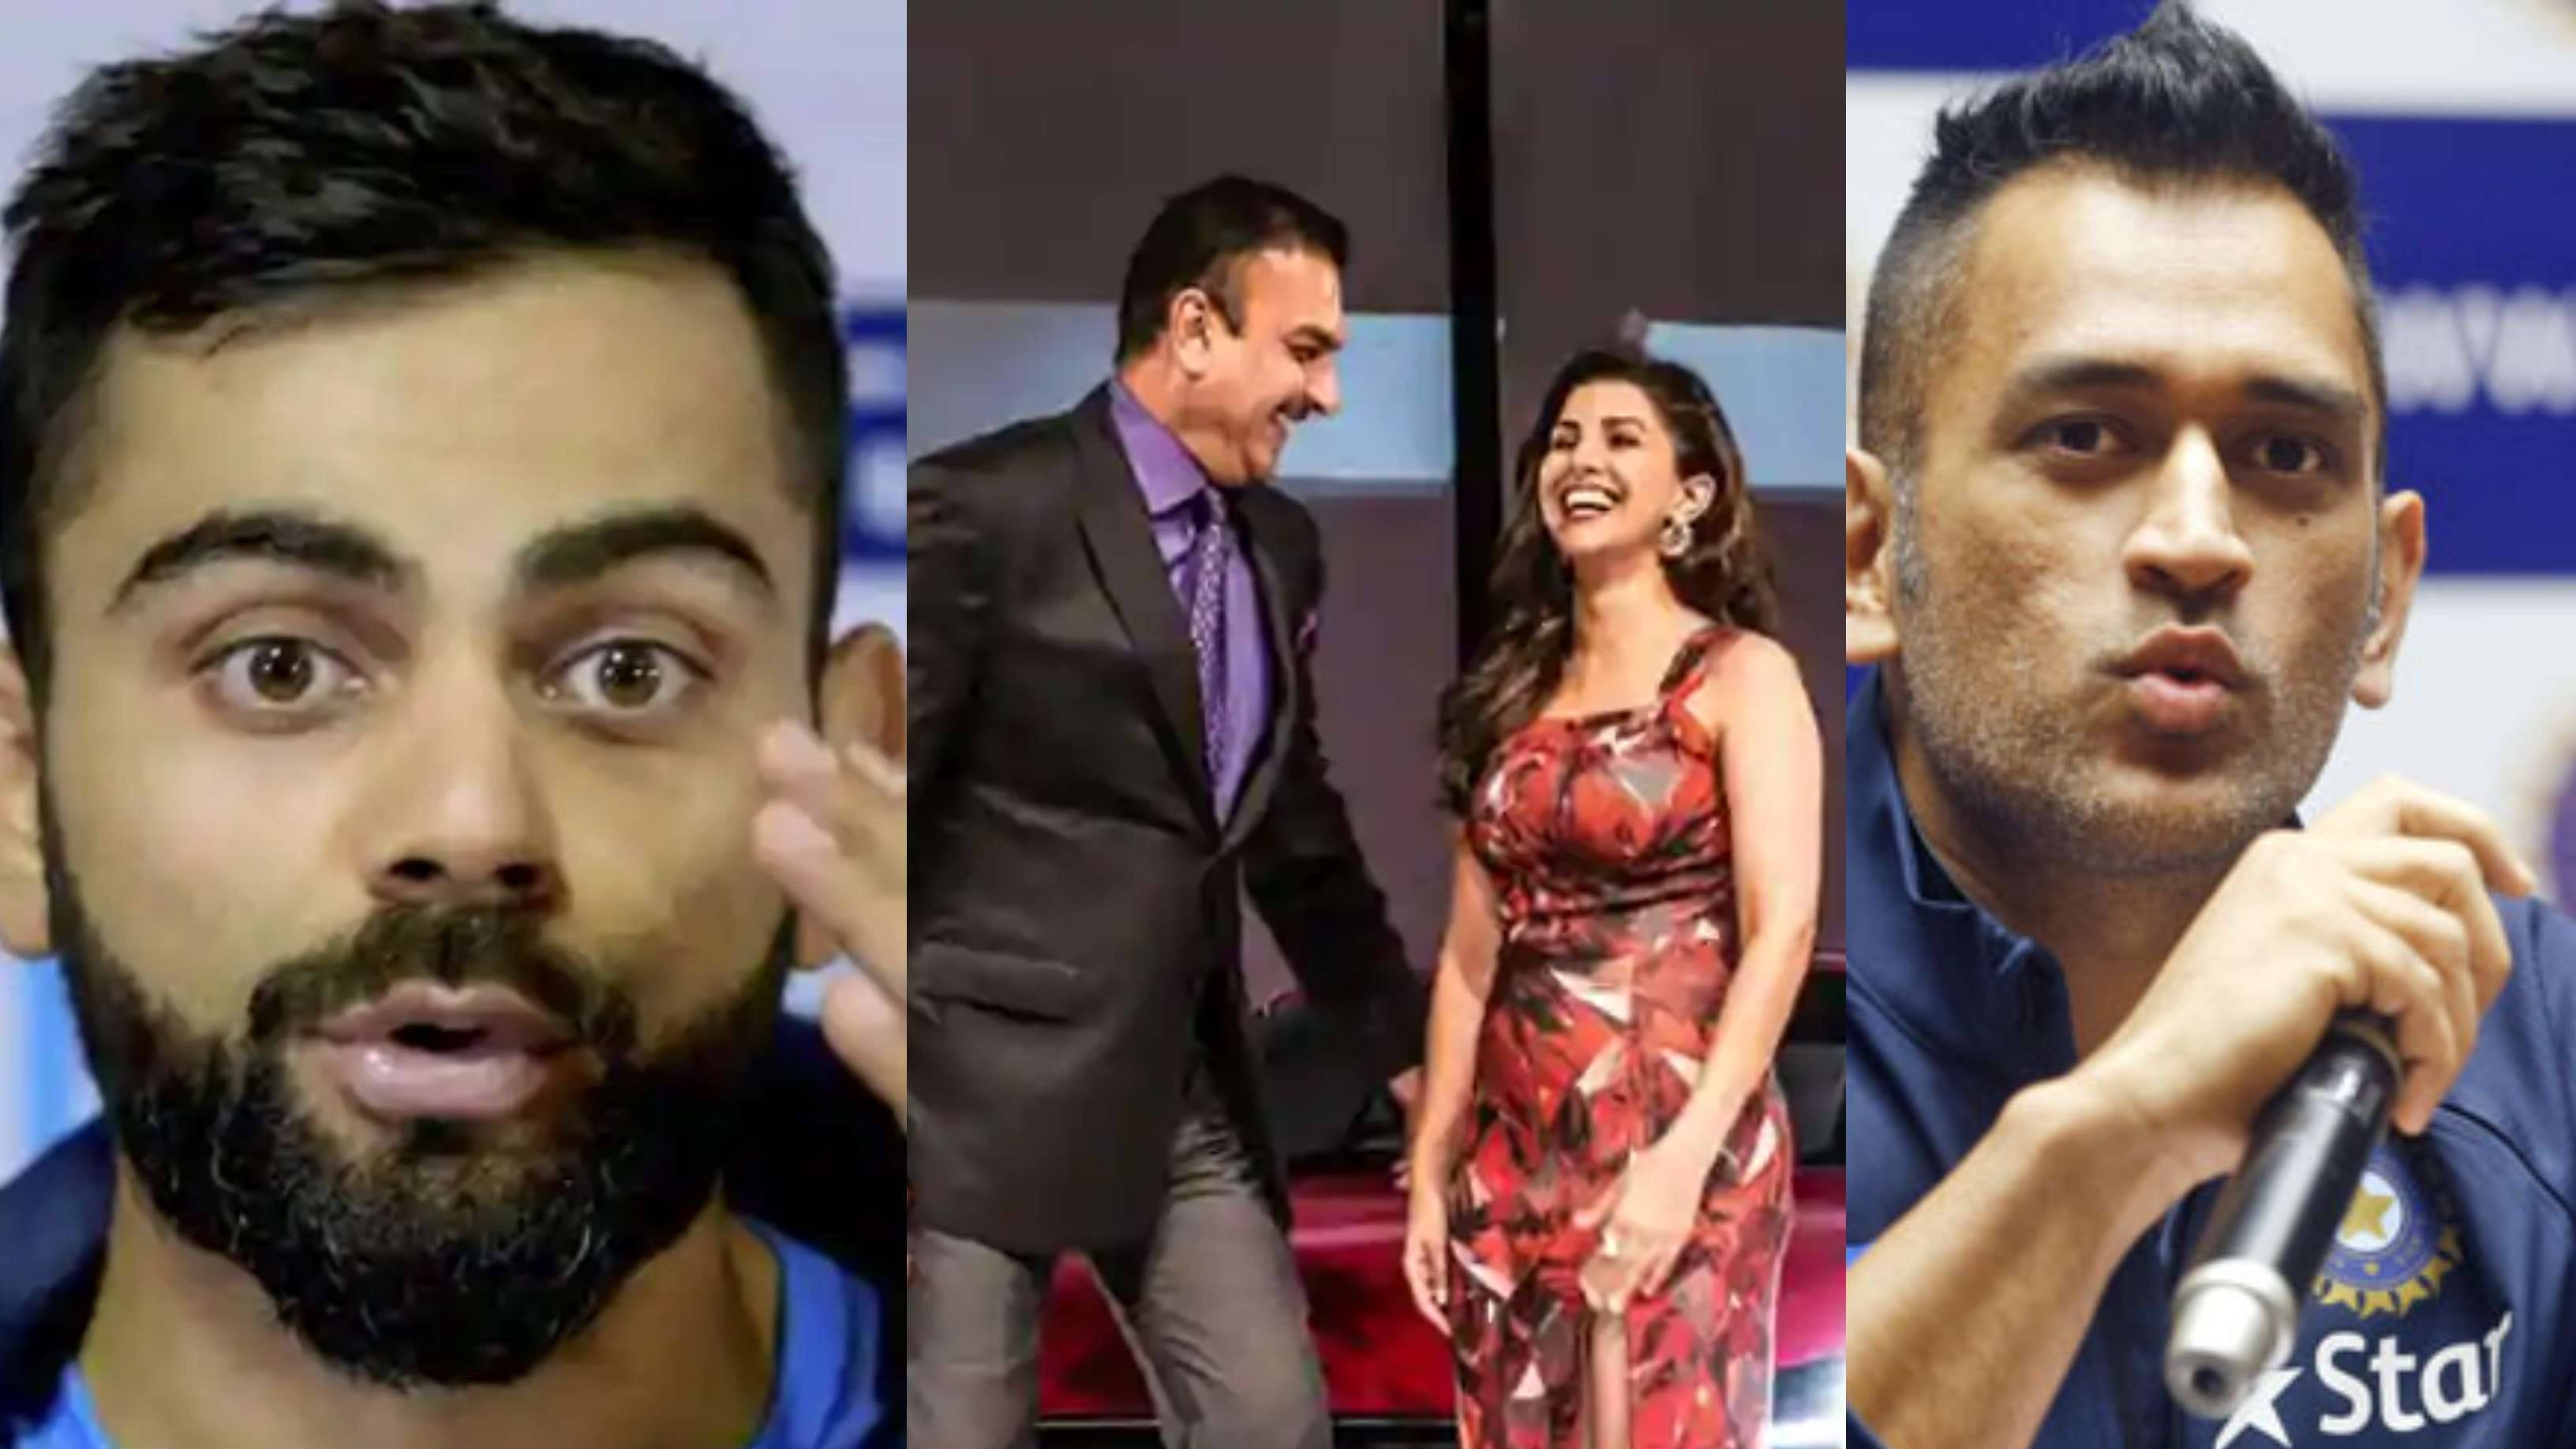 FAKE FB WALL: MS Dhoni and Virat Kohli react to rumors of Ravi Shastri's relationship with Nimrat Kaur